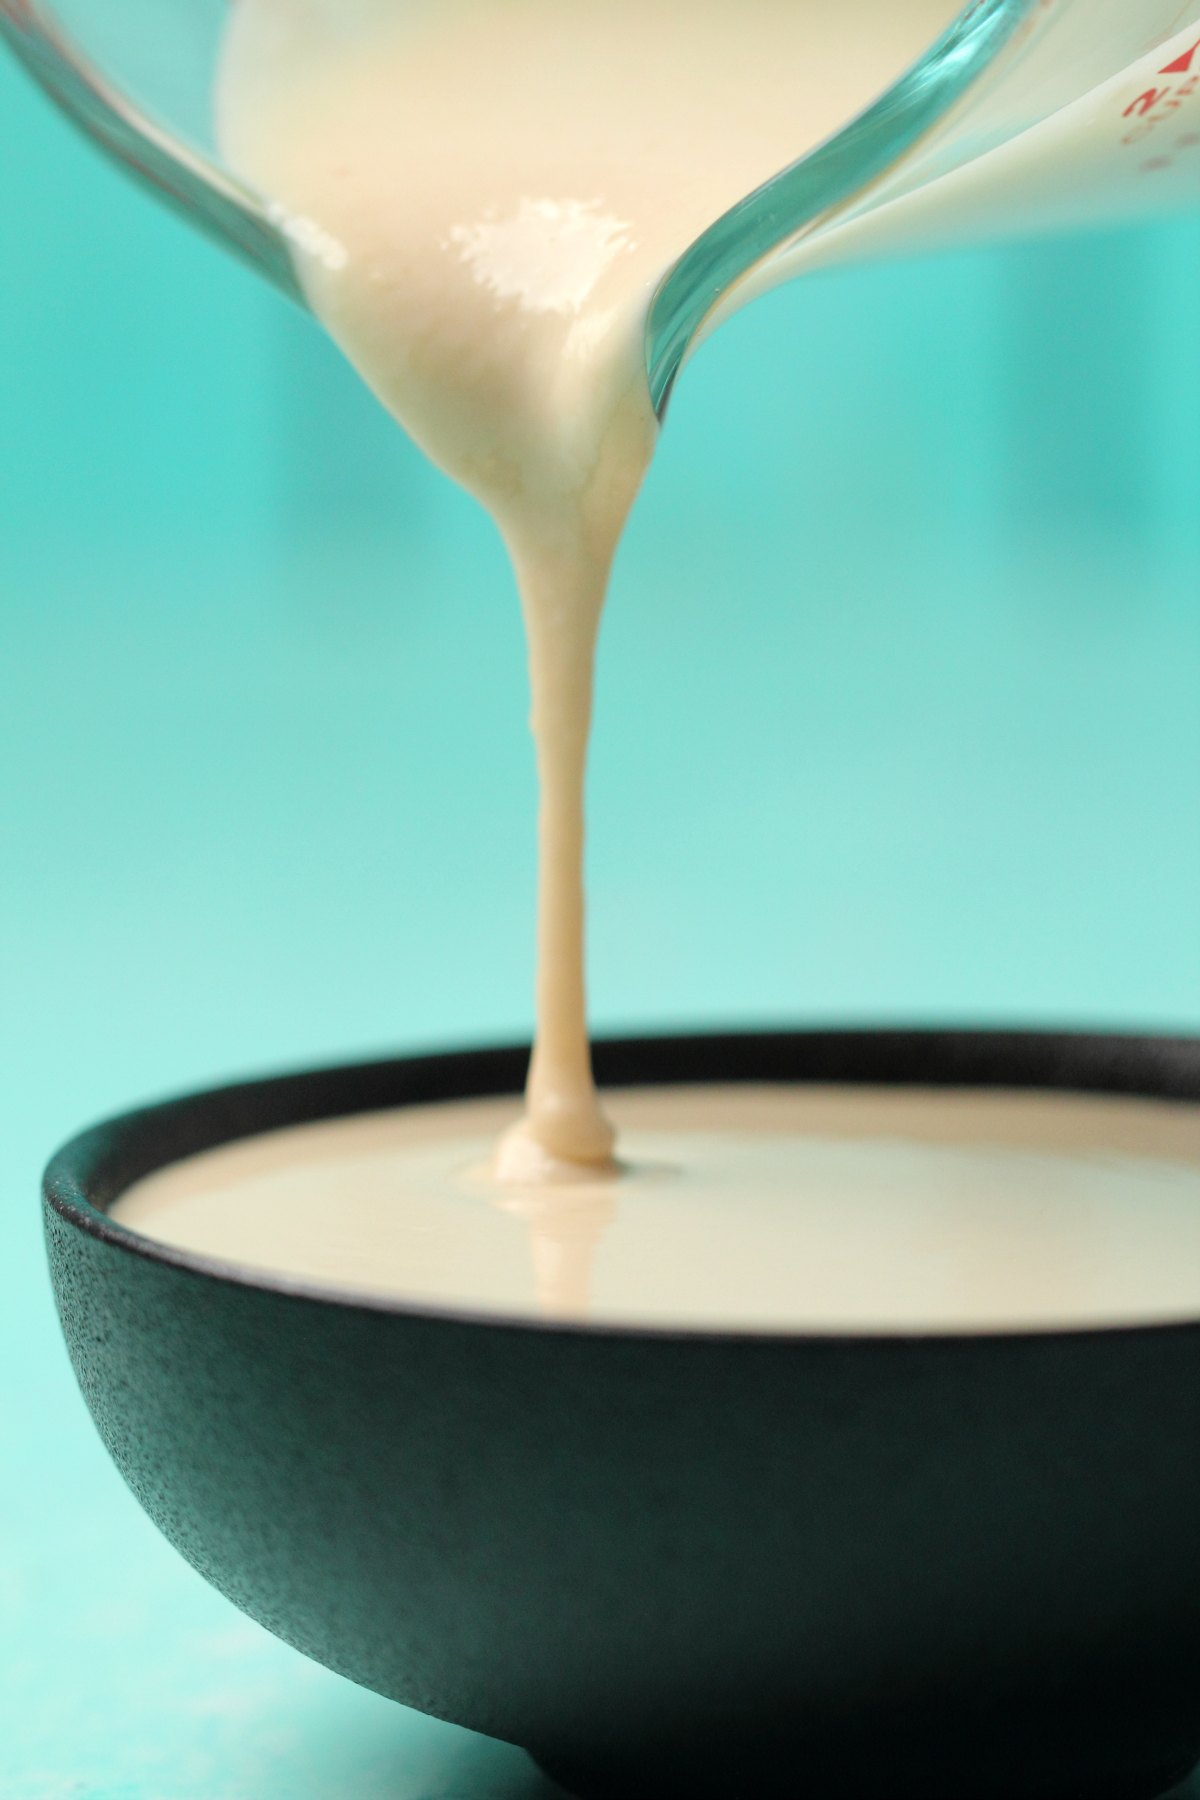 Tahini sauce pouring from a jug into a round black dish.